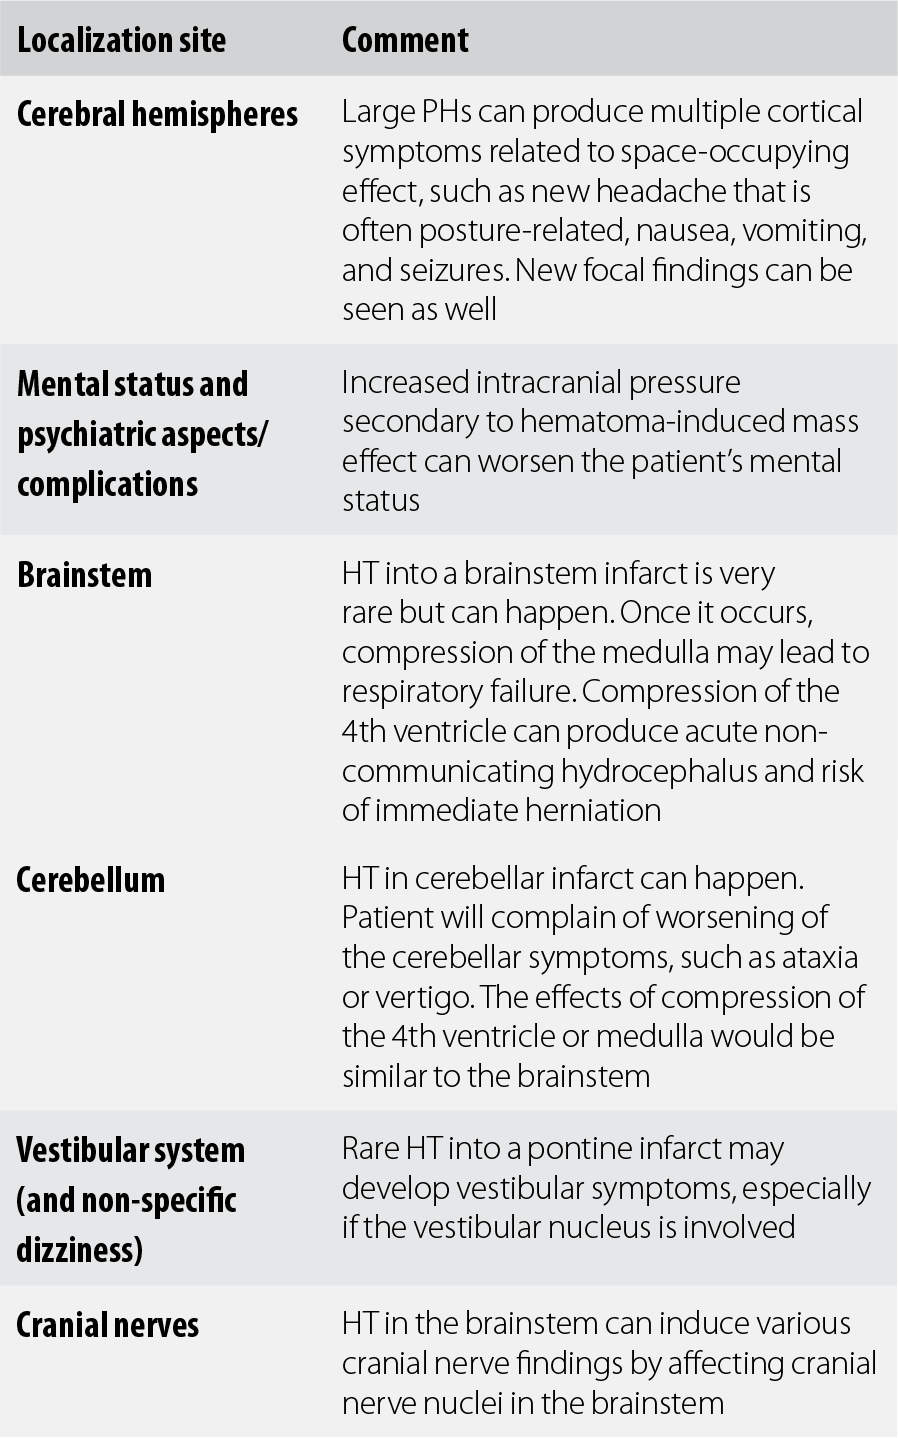 H - Synopsis of Neurology, Psychiatry and Related Systemic